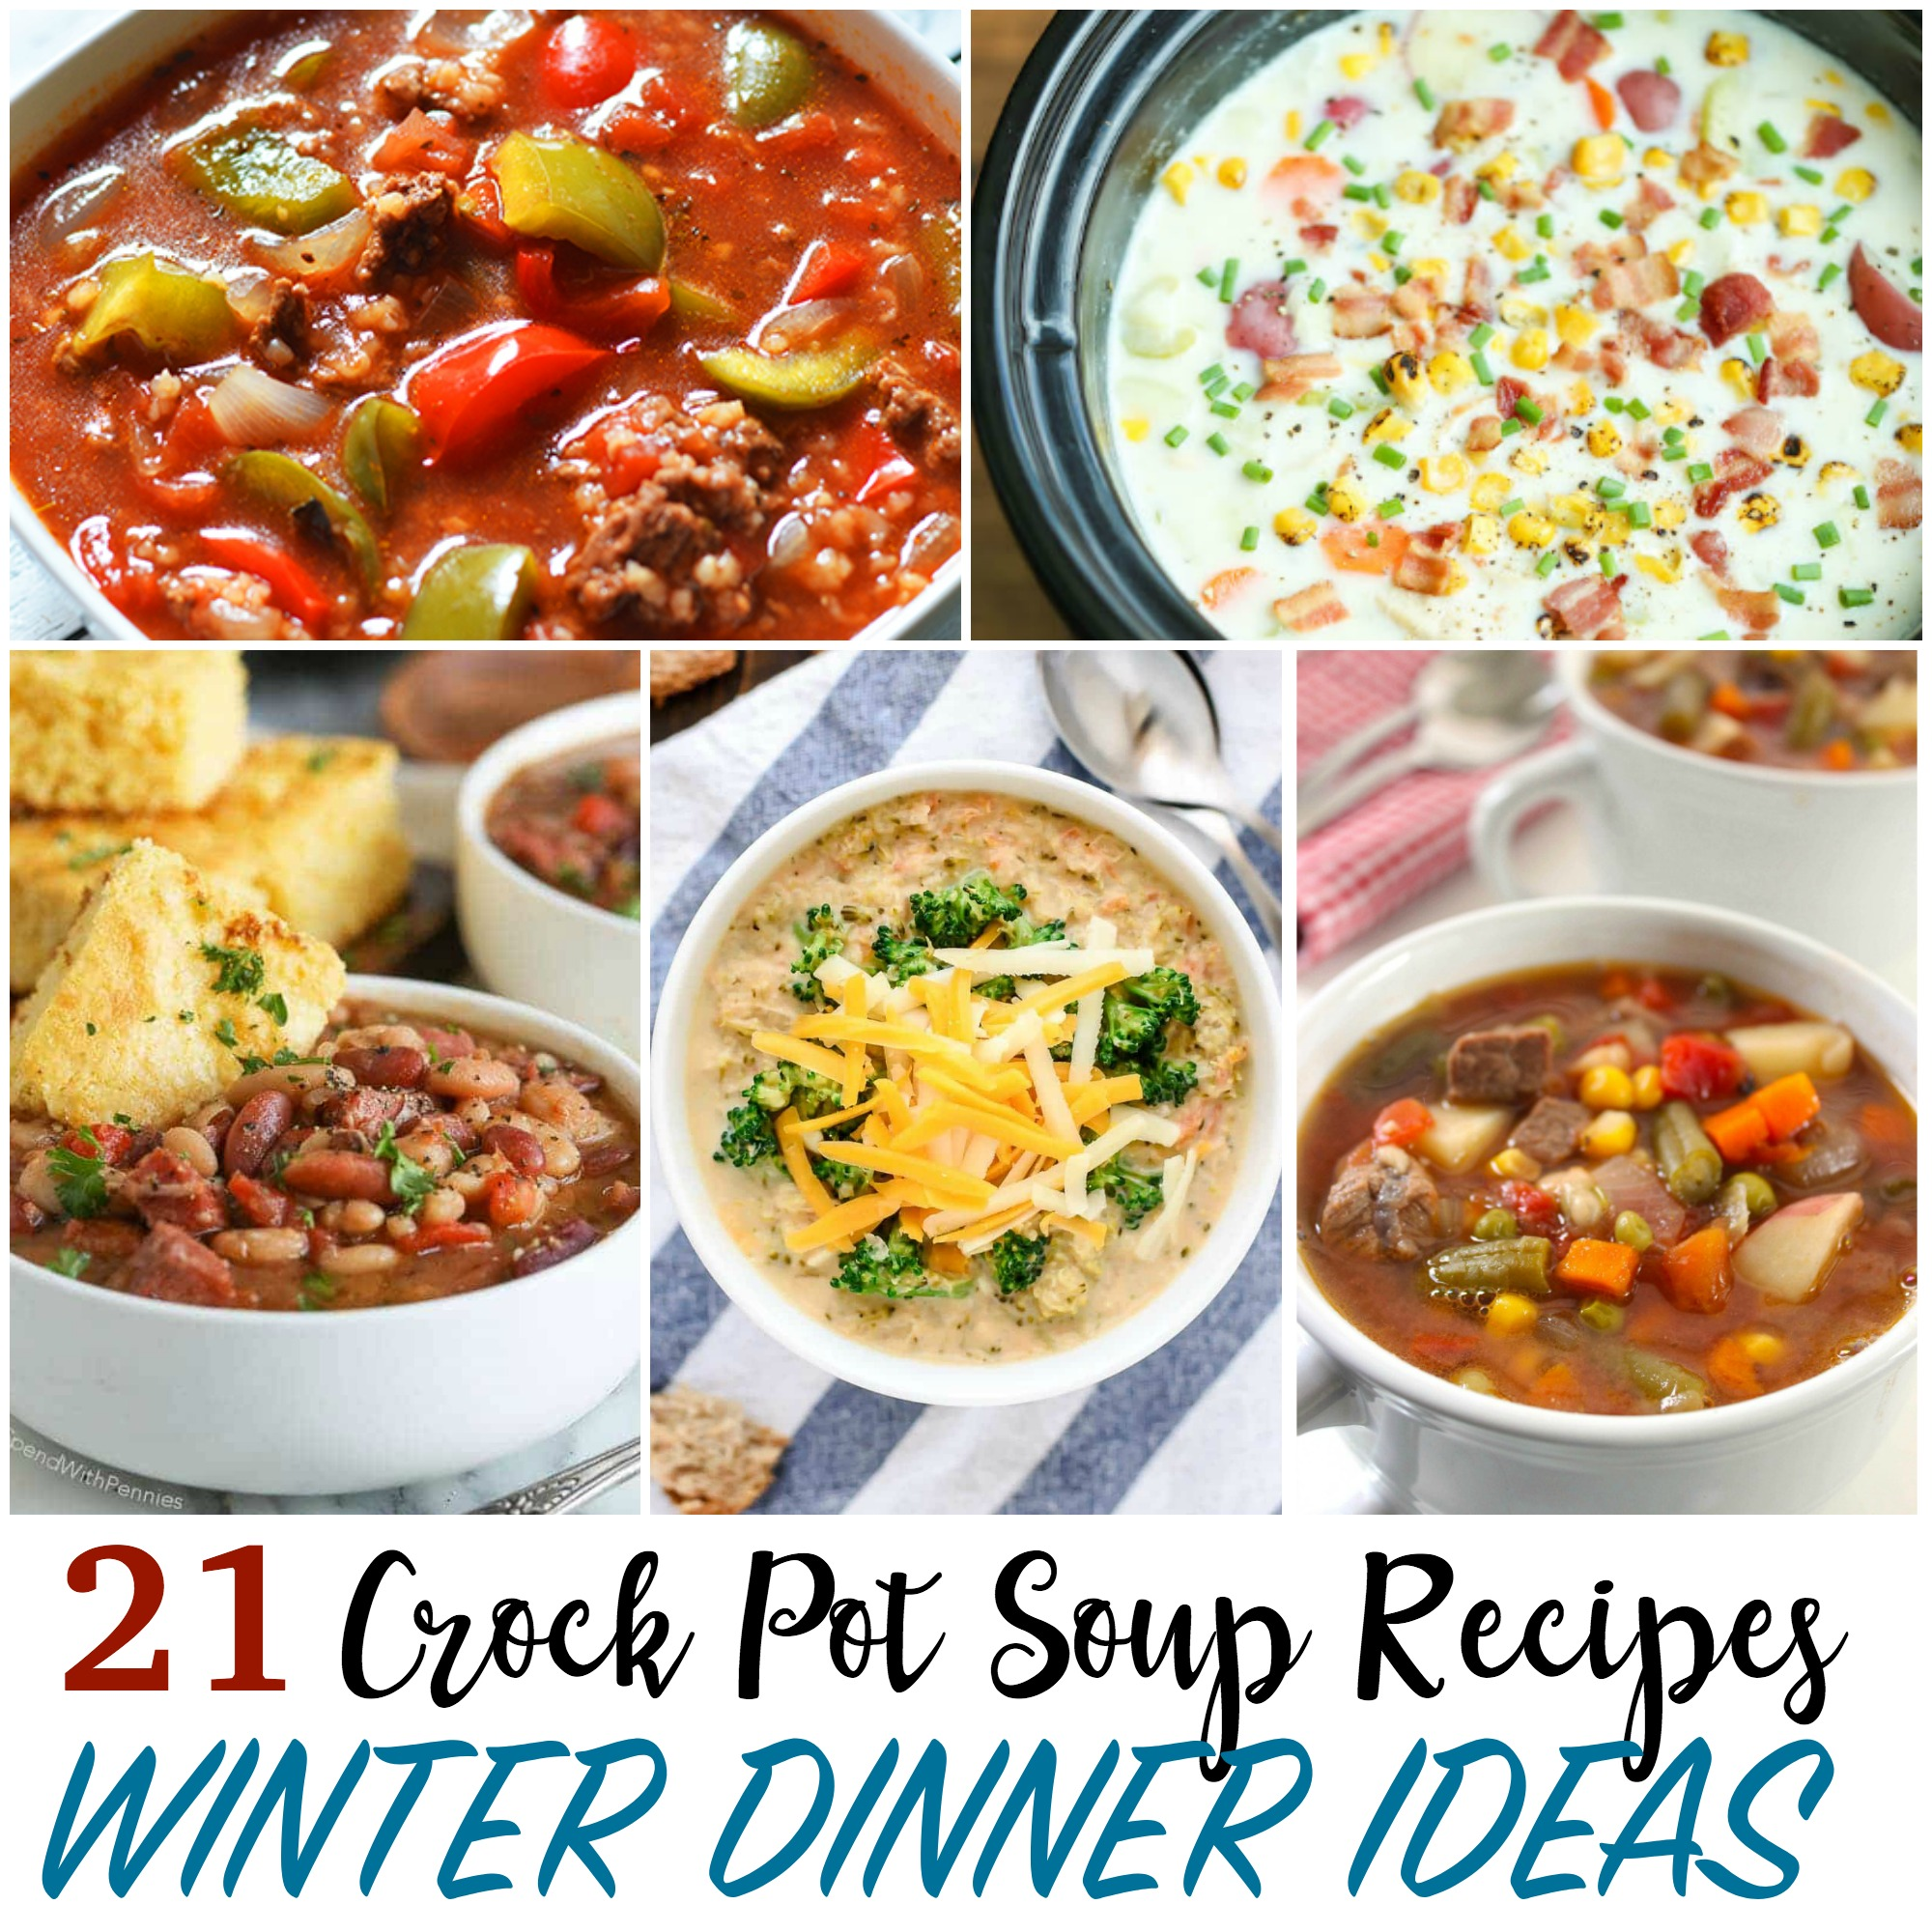 WINTER DINNER IDEAS, CROCK POT SOUP RECIPES